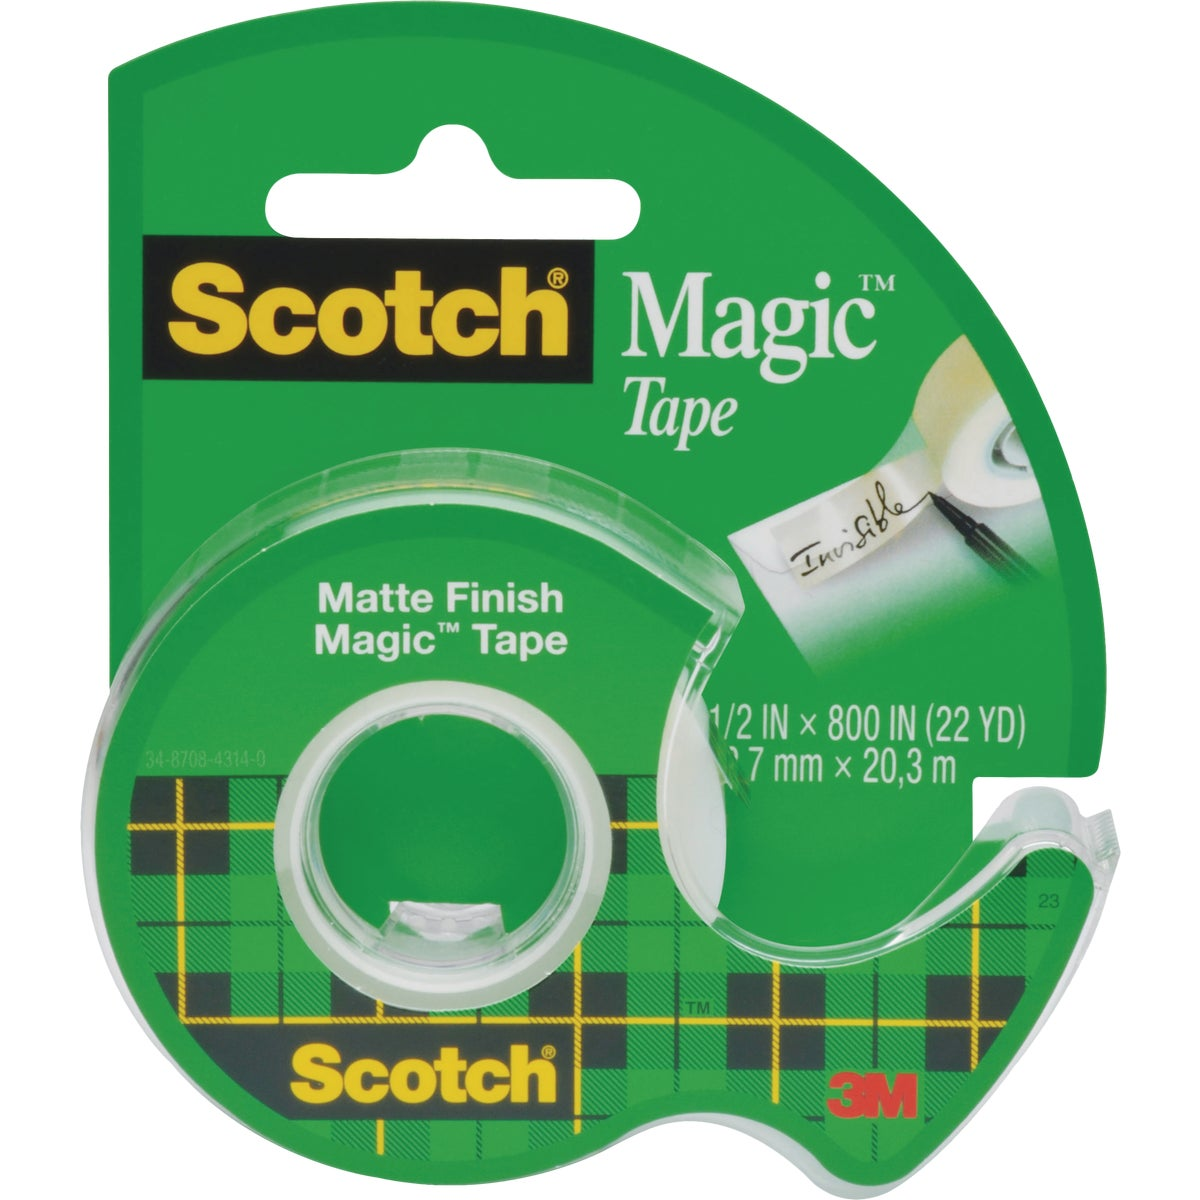 1/2X800 TRANSPARENT TAPE - 119 by 3m Co